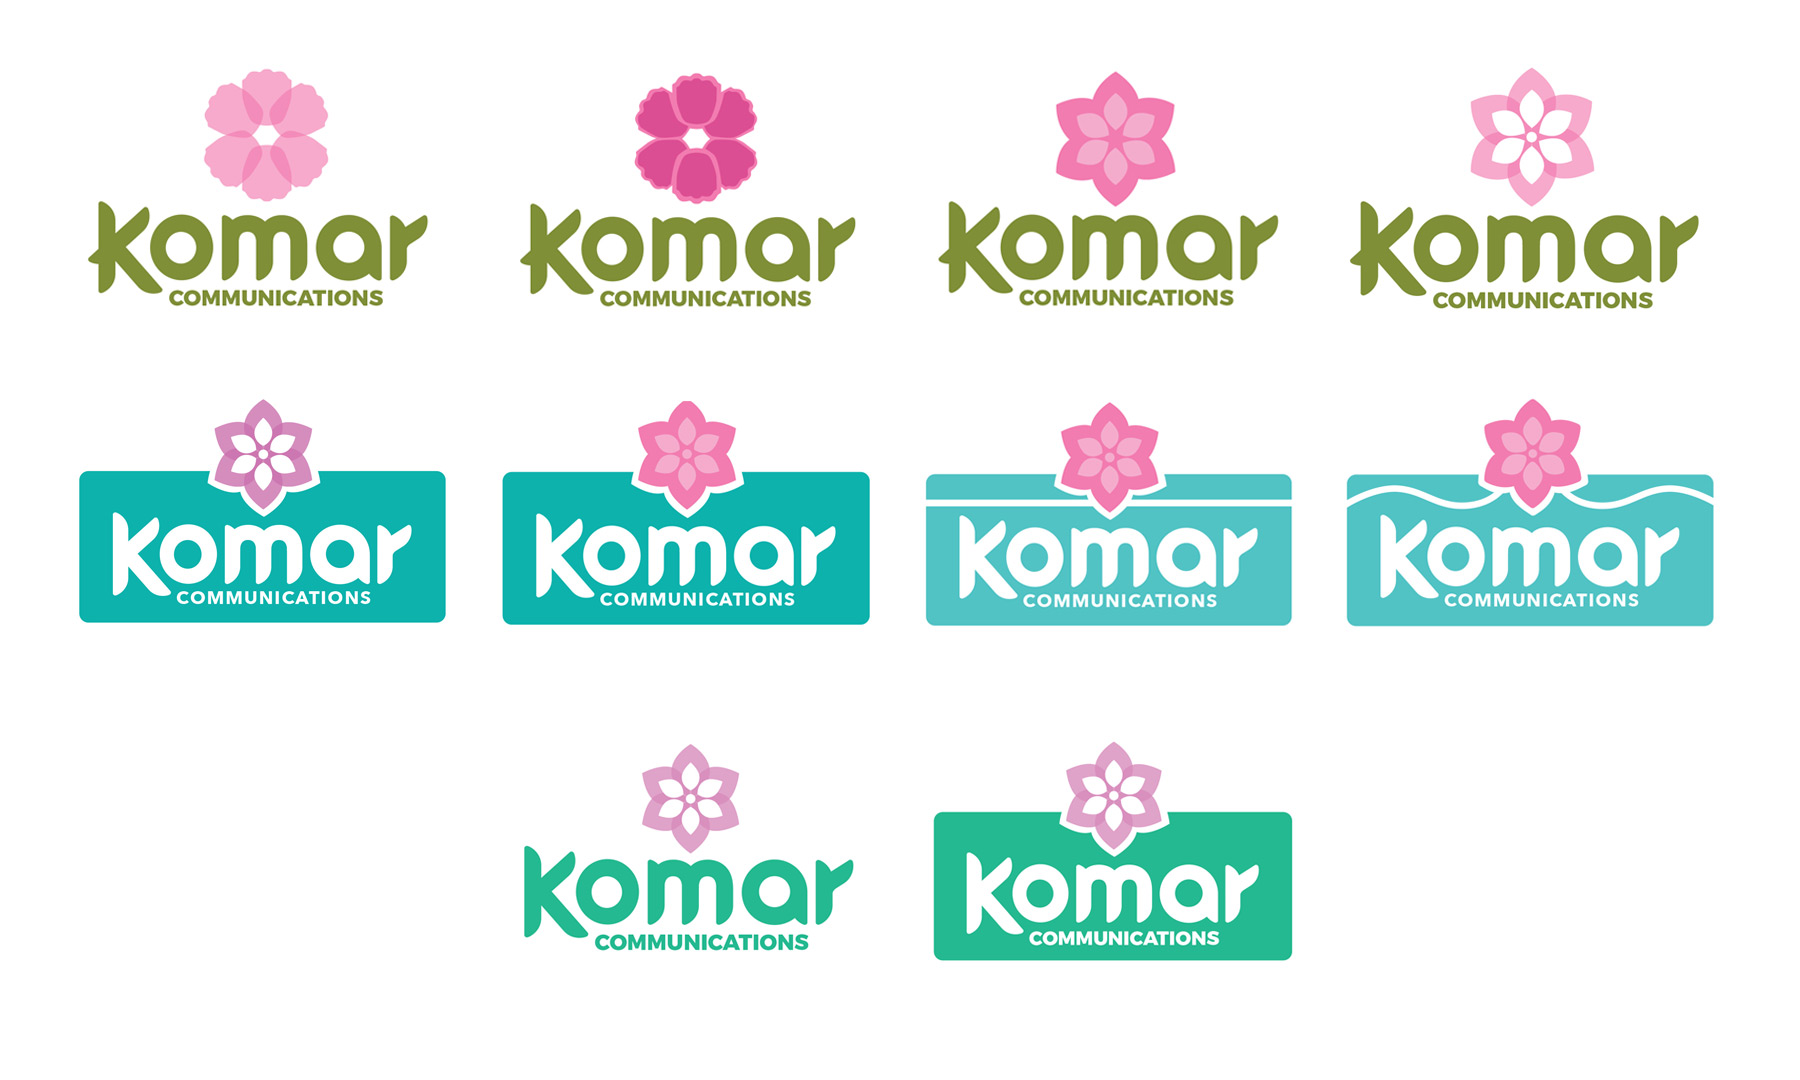 Komar-versions.jpg